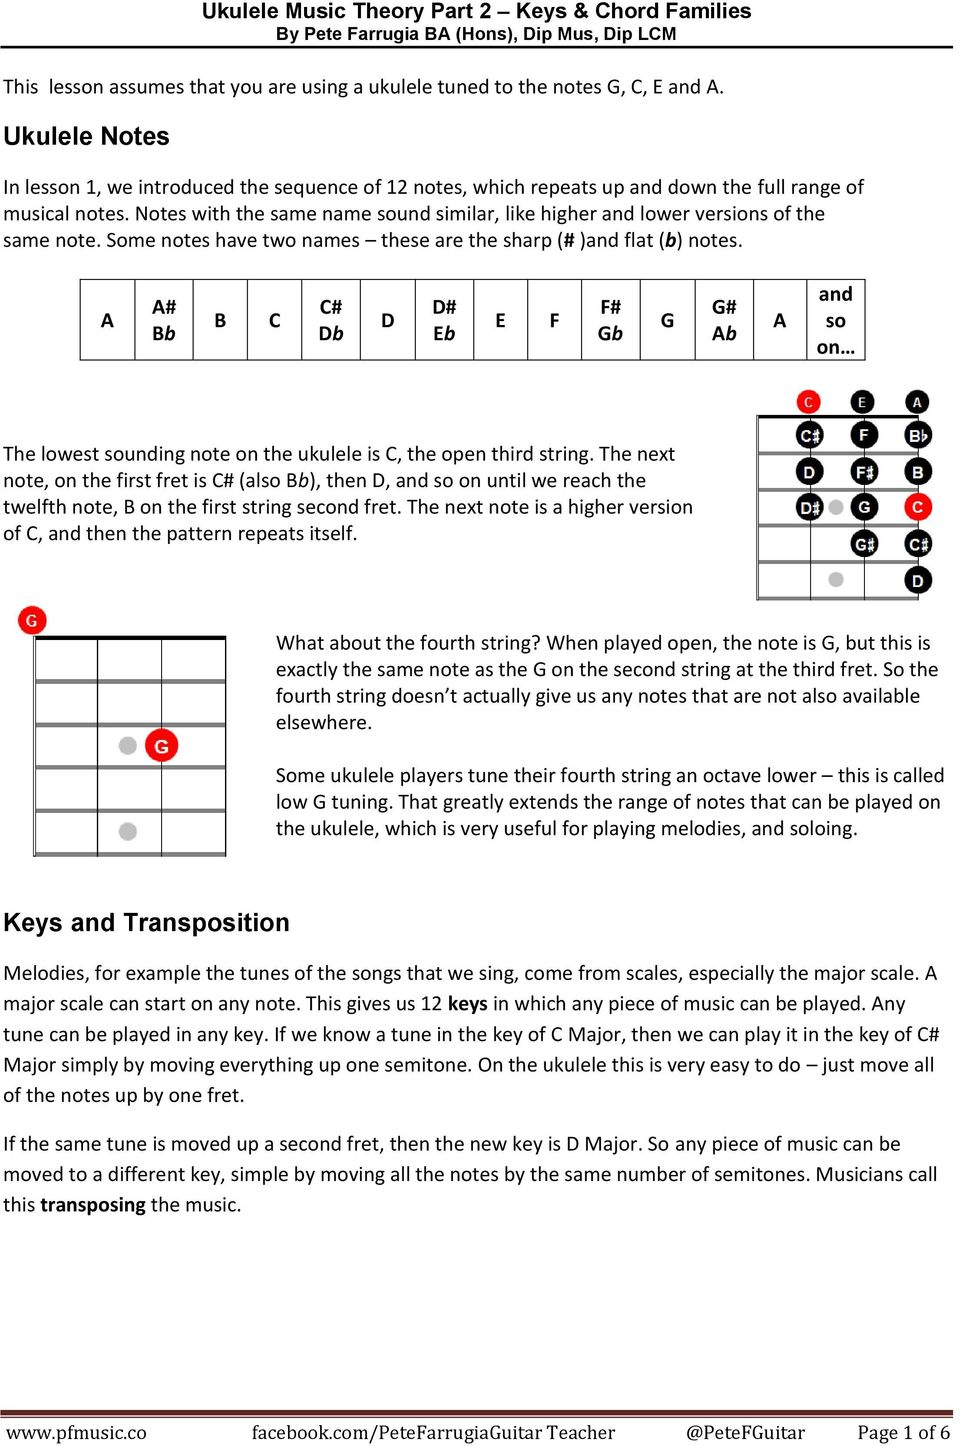 Ukulele Music Theory Part 2 Keys & Chord Families By Pete Farrugia